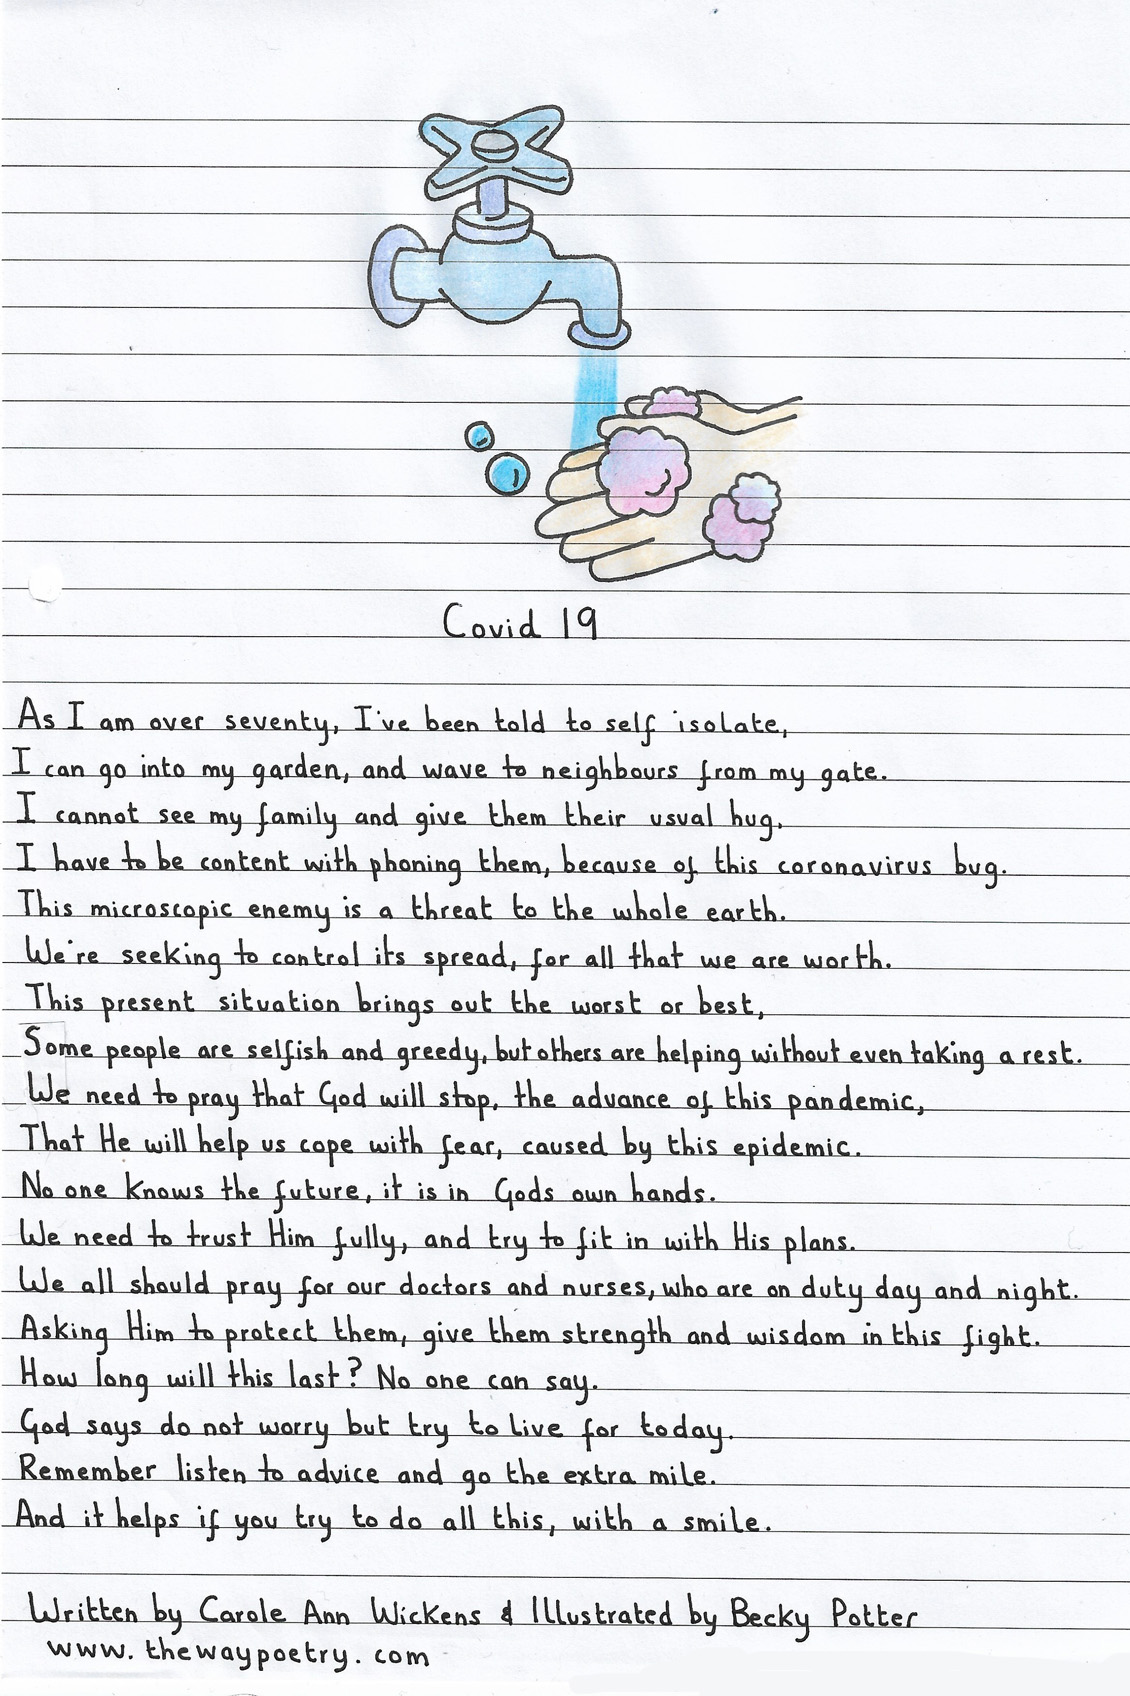 Covid 19 by Carole Ann Wickens